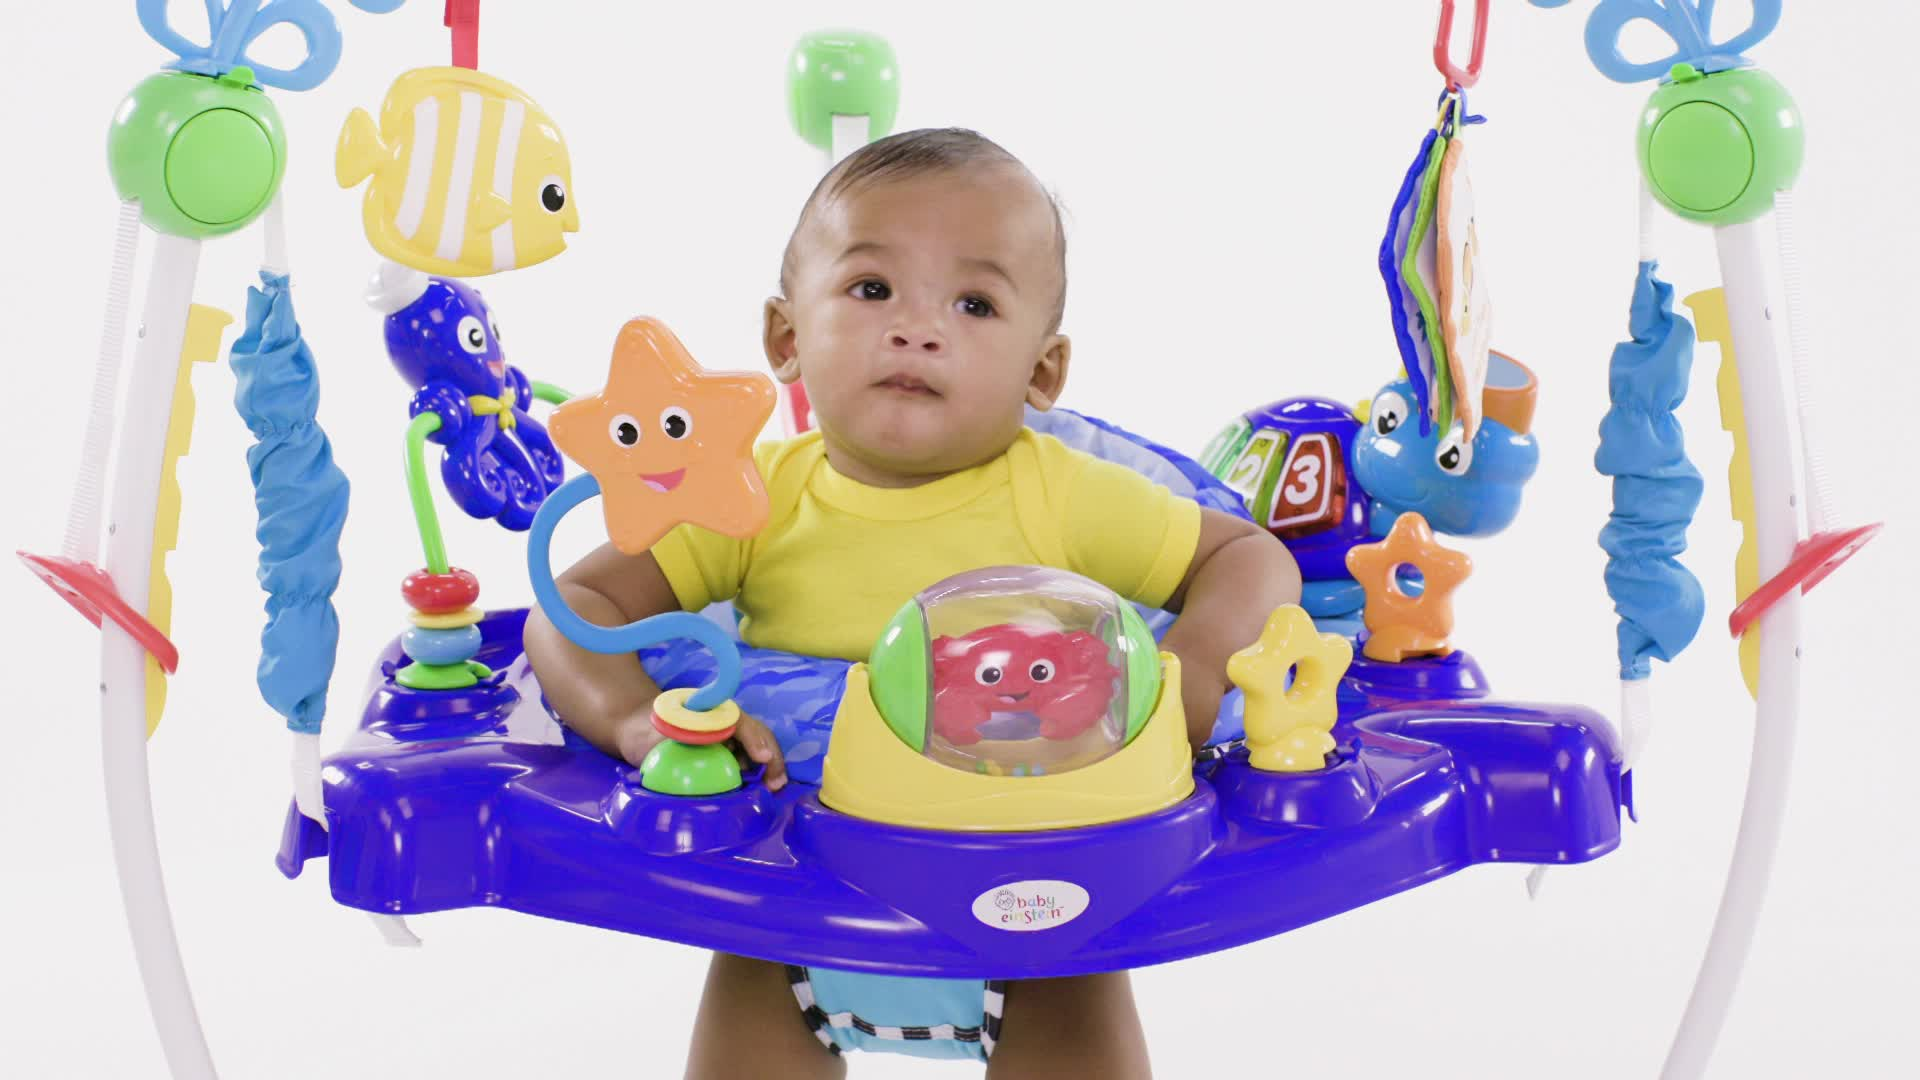 Baby Einstein 3 In 1 Jumper And Activity Mat Colors Of The Ocean Baby Einstein Neptune 39s Ocean Discovery Jumper Bed Bath